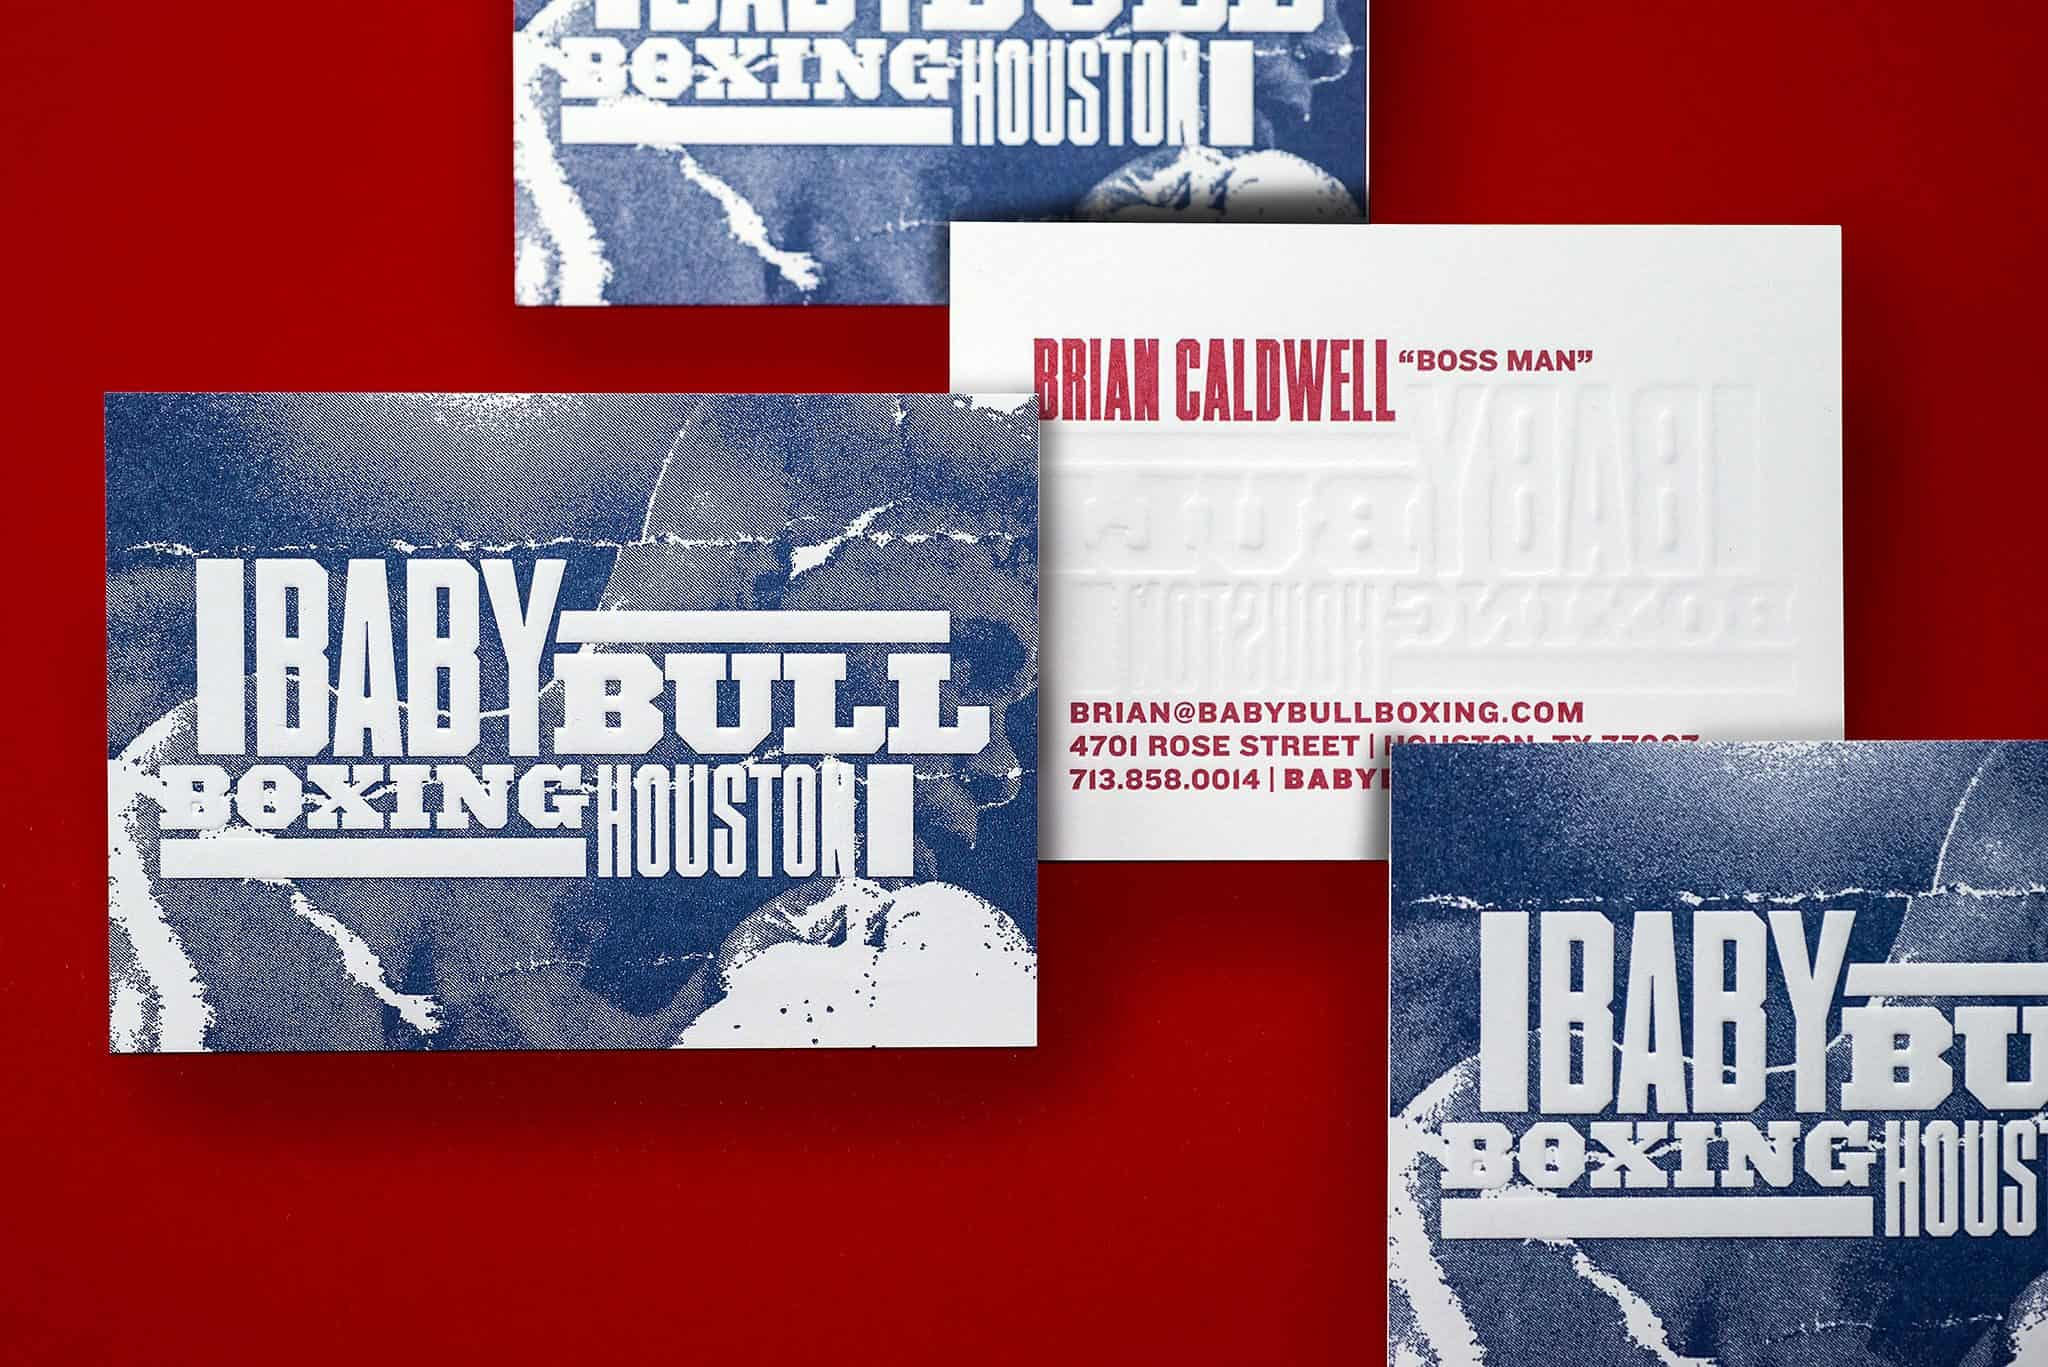 Embossed and letterpress printed business cards for Baby Bull Boxing | Designed by Field of Study: A branding and graphic design consultancy | Houston TX | Jennifer Blanco & John Earles